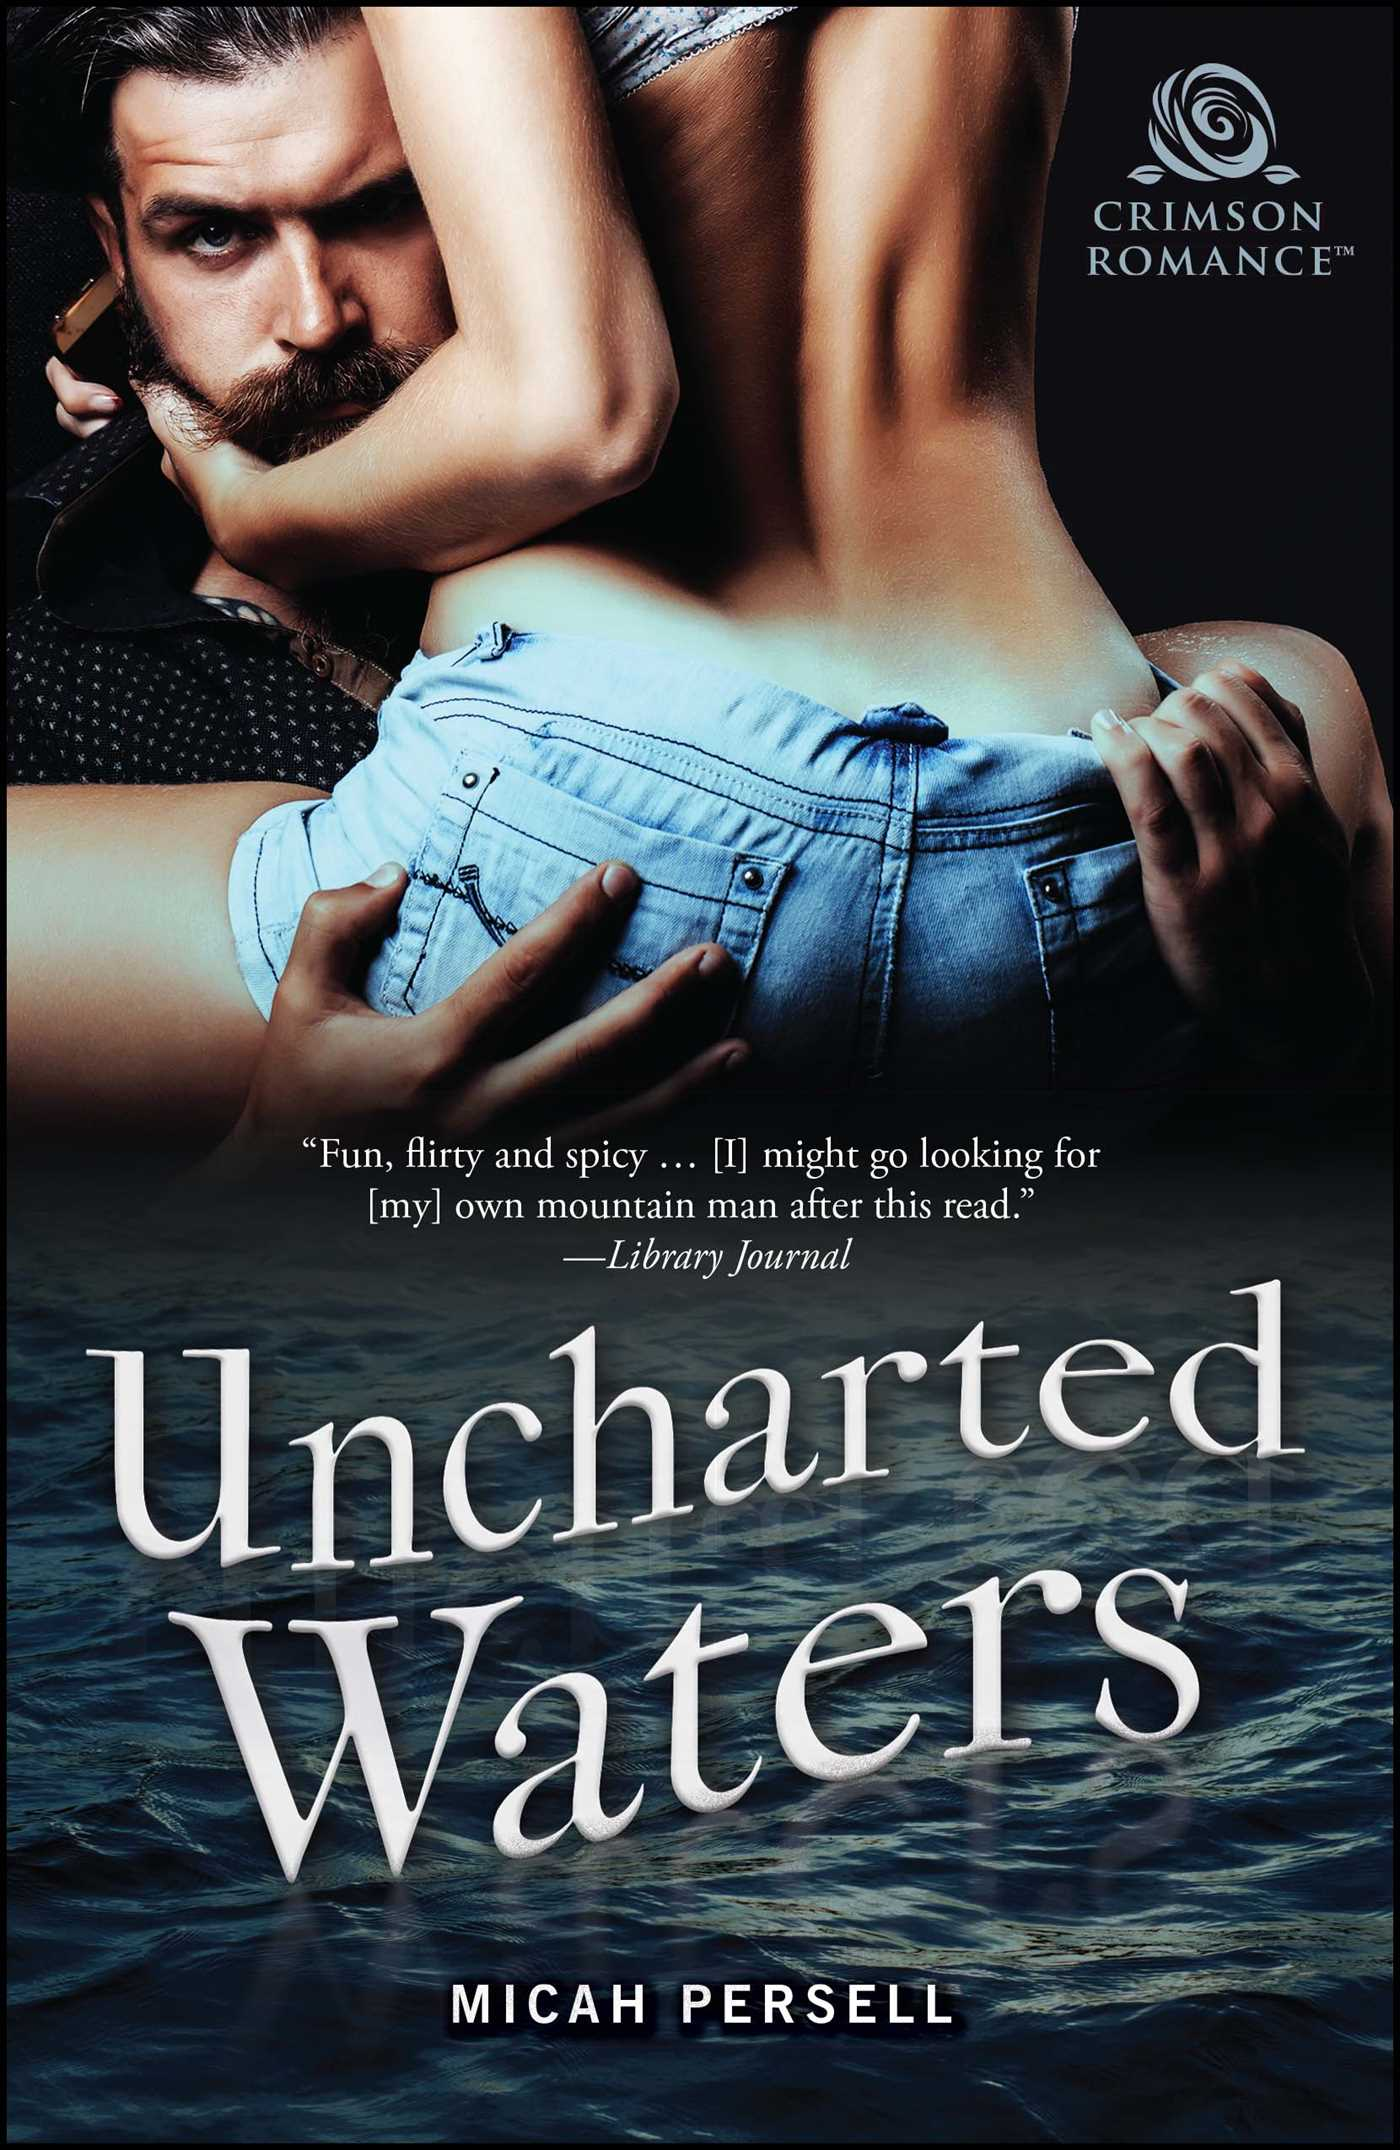 Uncharted waters 9781507206119 hr